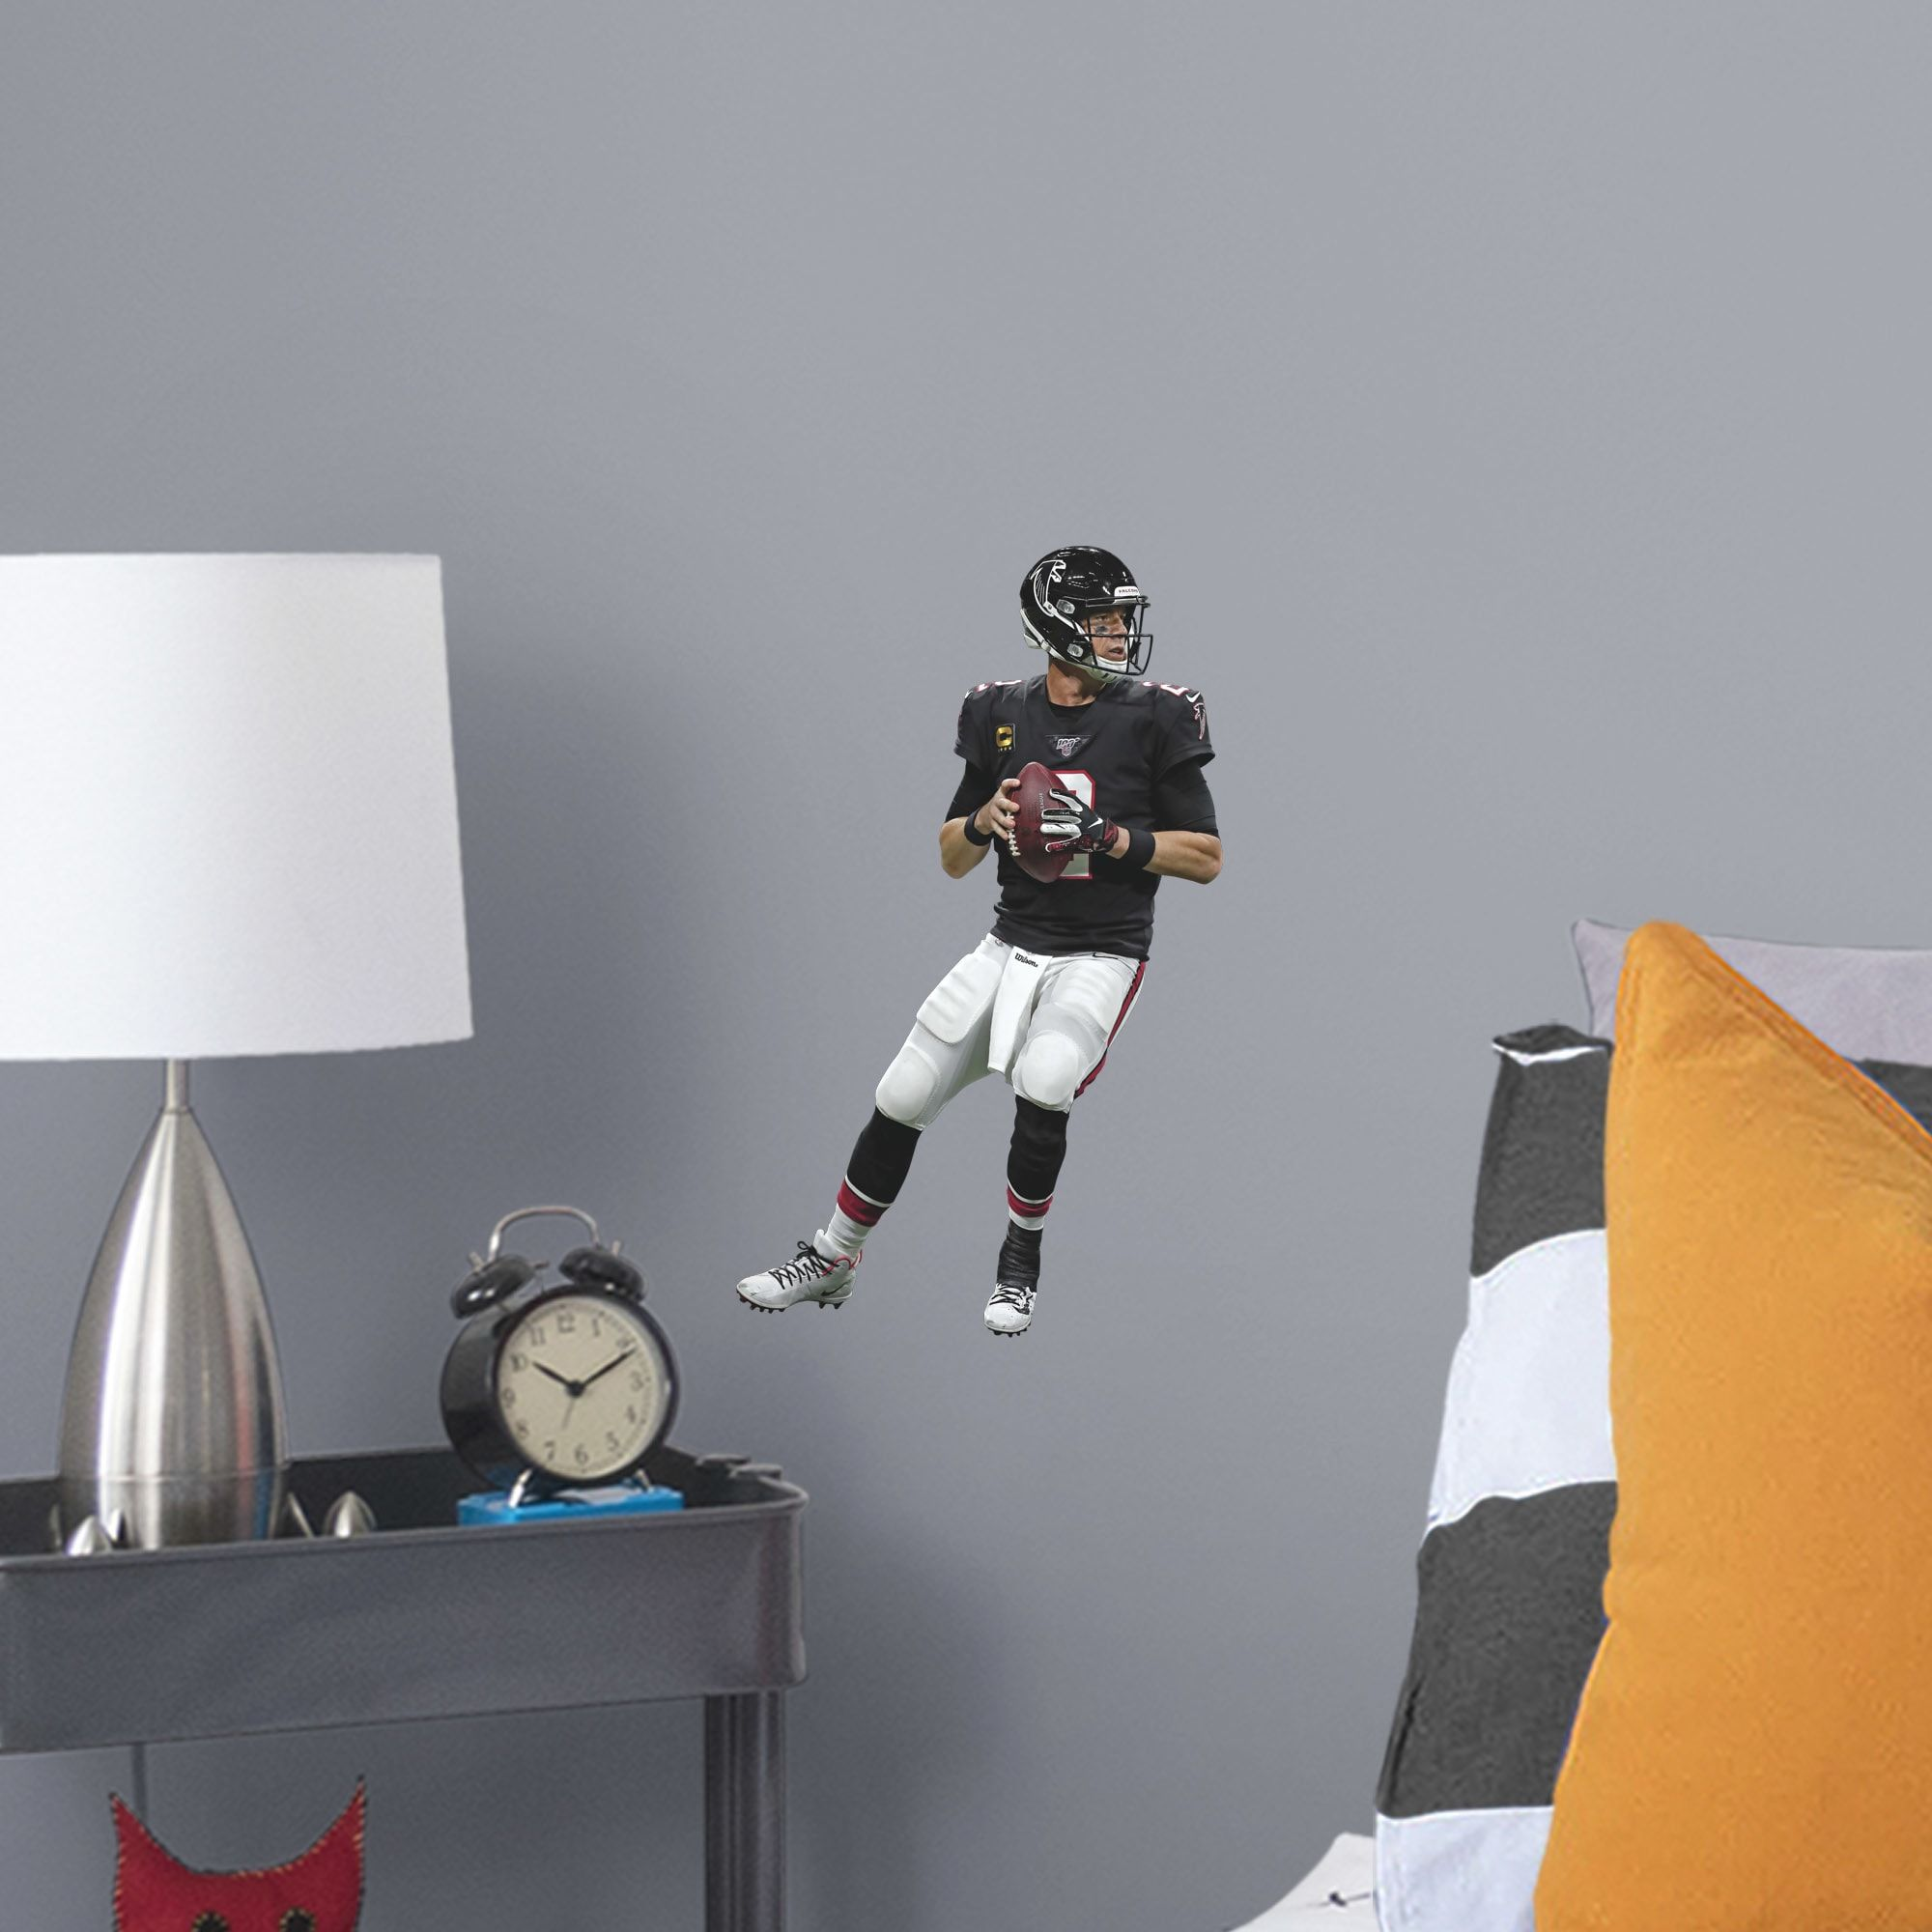 Matt Ryan Throwback Large Officially Licensed Nfl Removable Wall Decal In 2020 Removable Wall Decals Wall Decals Removable Wall